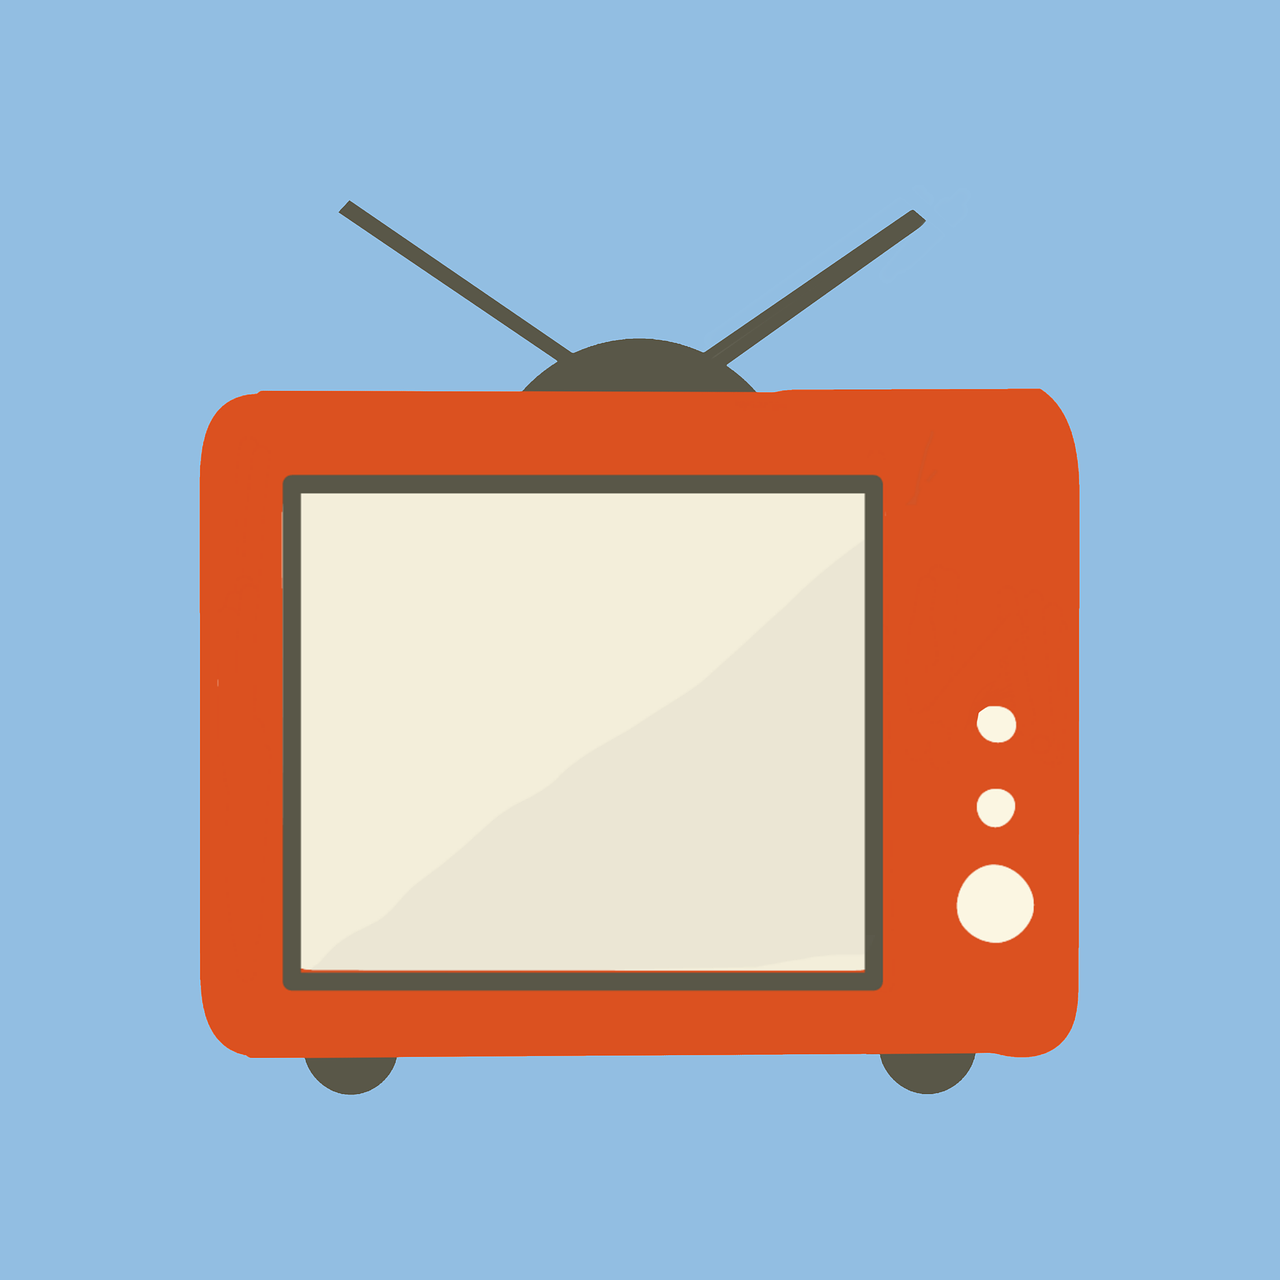 Tv,icon,clipart,free pictures, free photos - free photo from